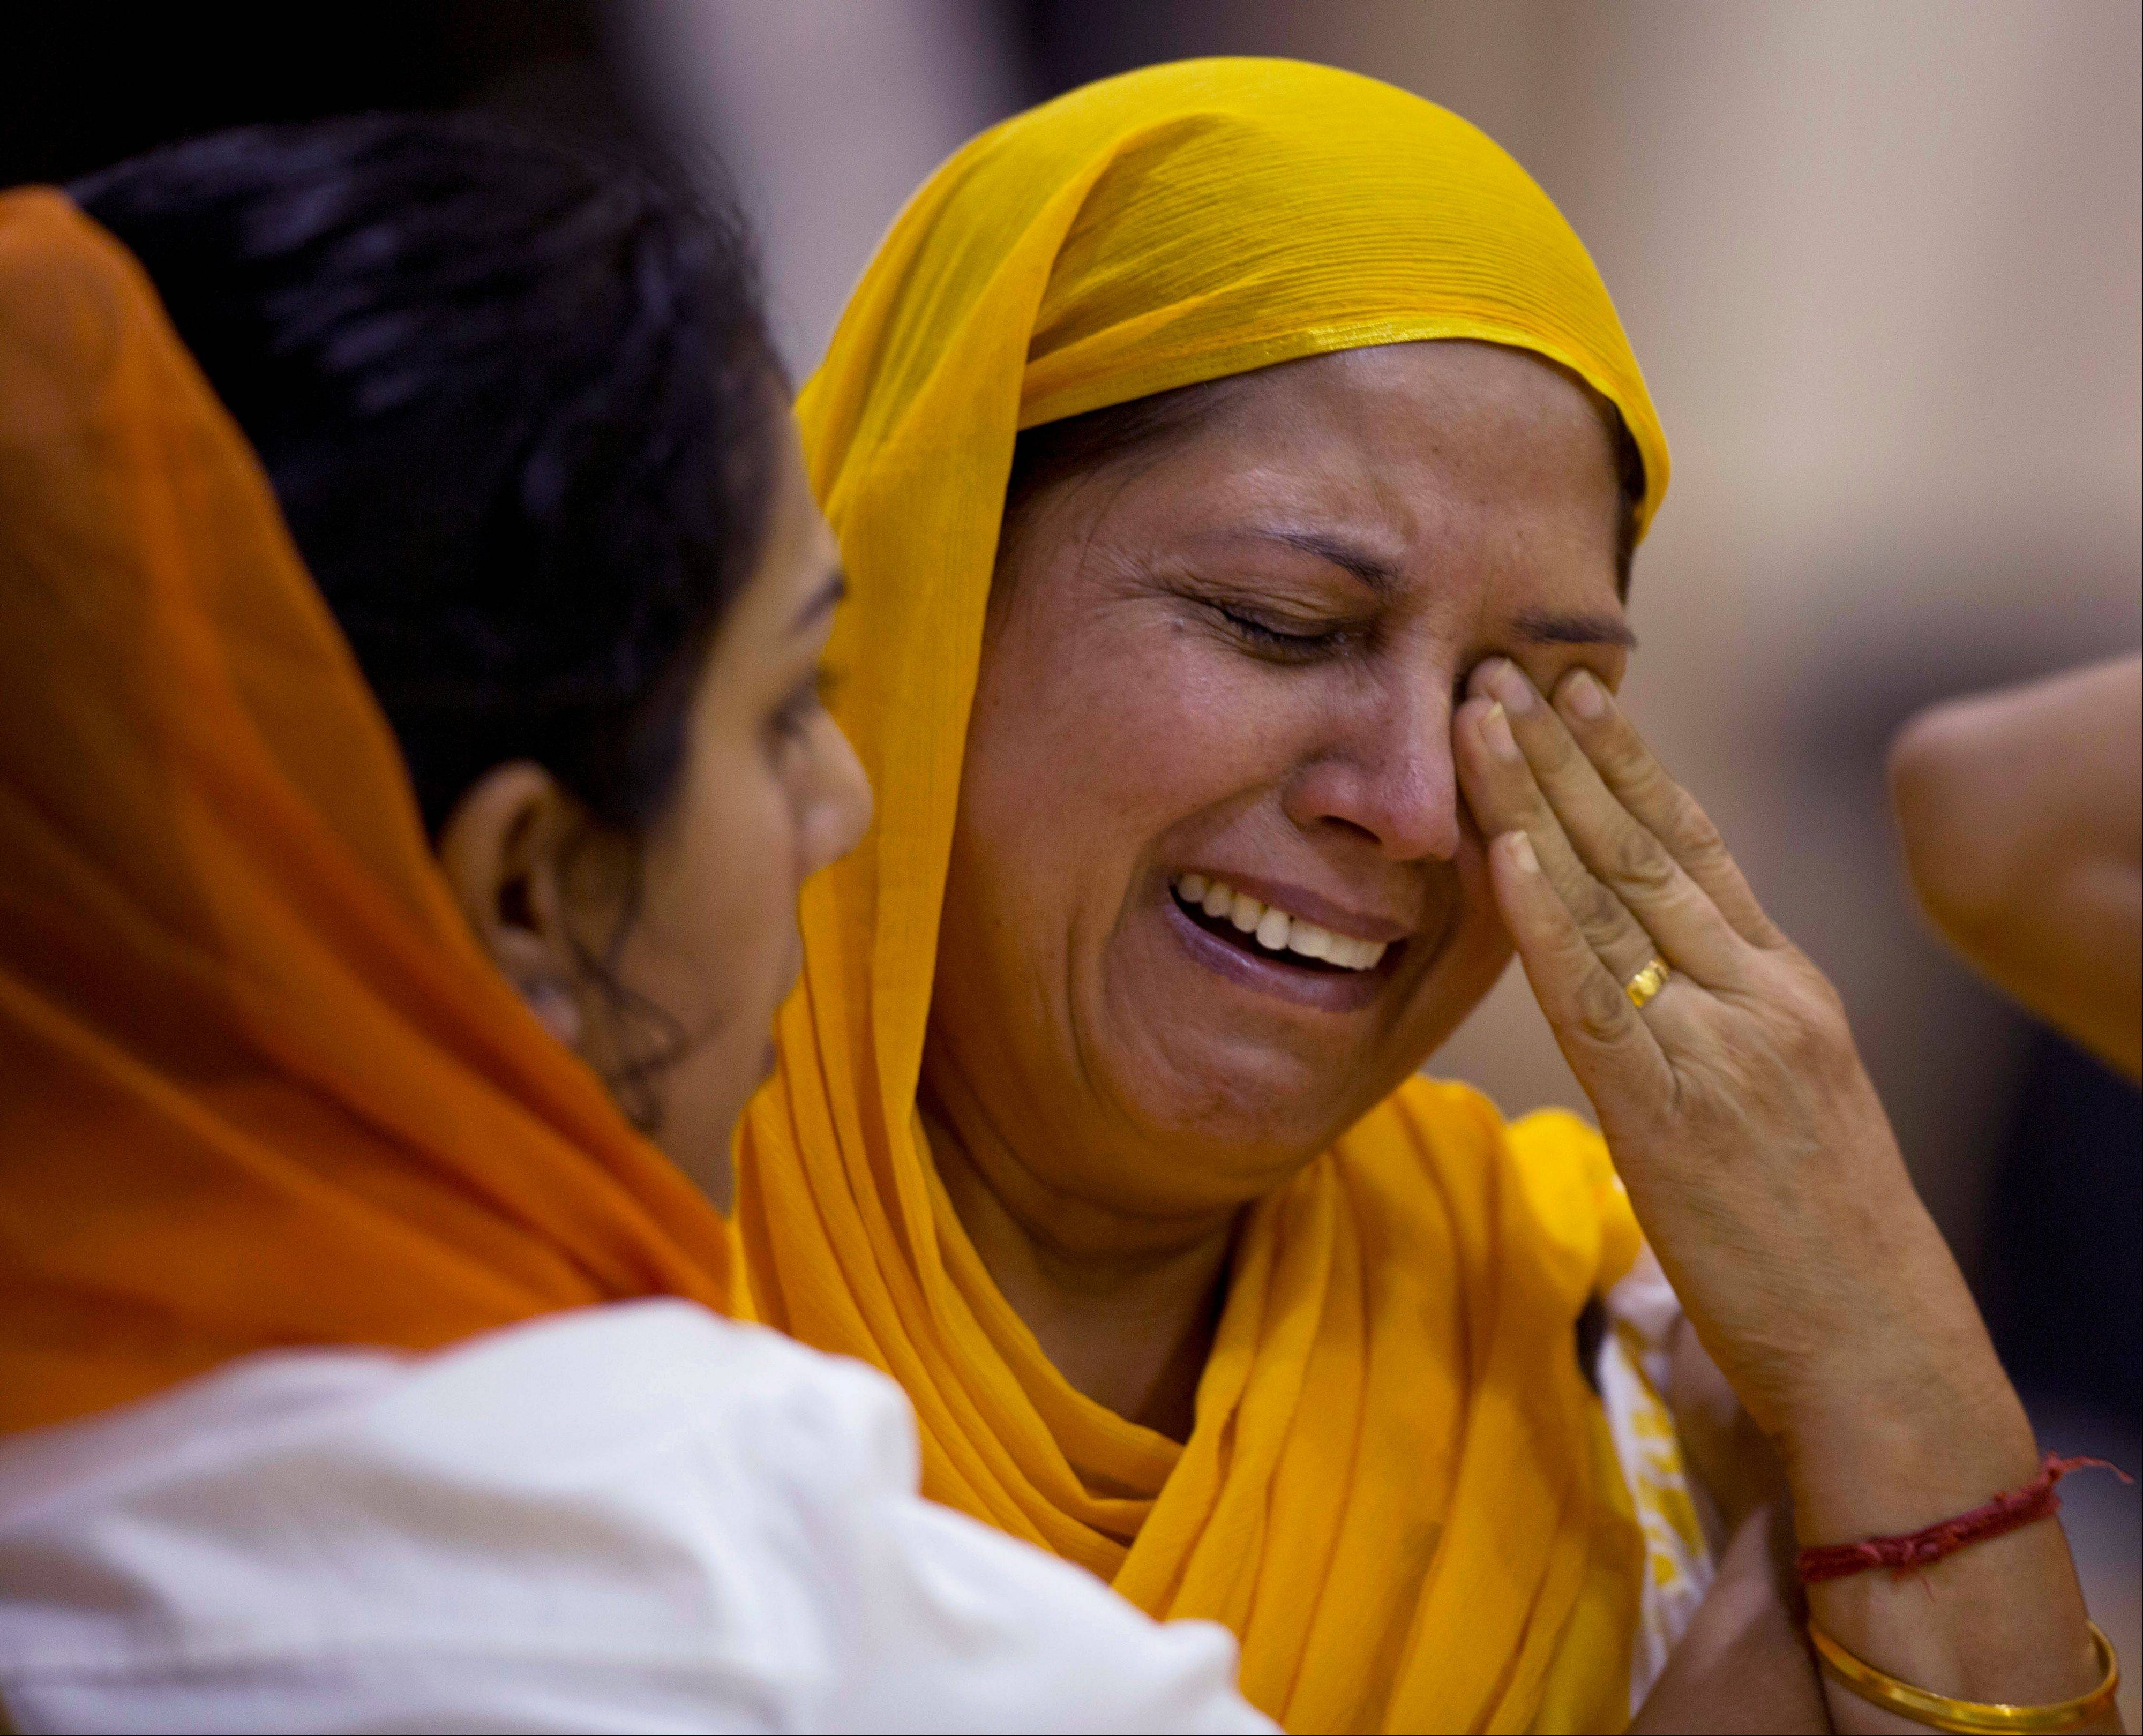 Mourners weep at the funeral and memorial service for the six victims of the Sikh temple of Wisconsin mass shooting in Oak Creek, Wis., Friday, Aug 10, 2012. The public service was held in the Oak Creek High School. Three other people were wounded in the shooting last Sunday at the temple.